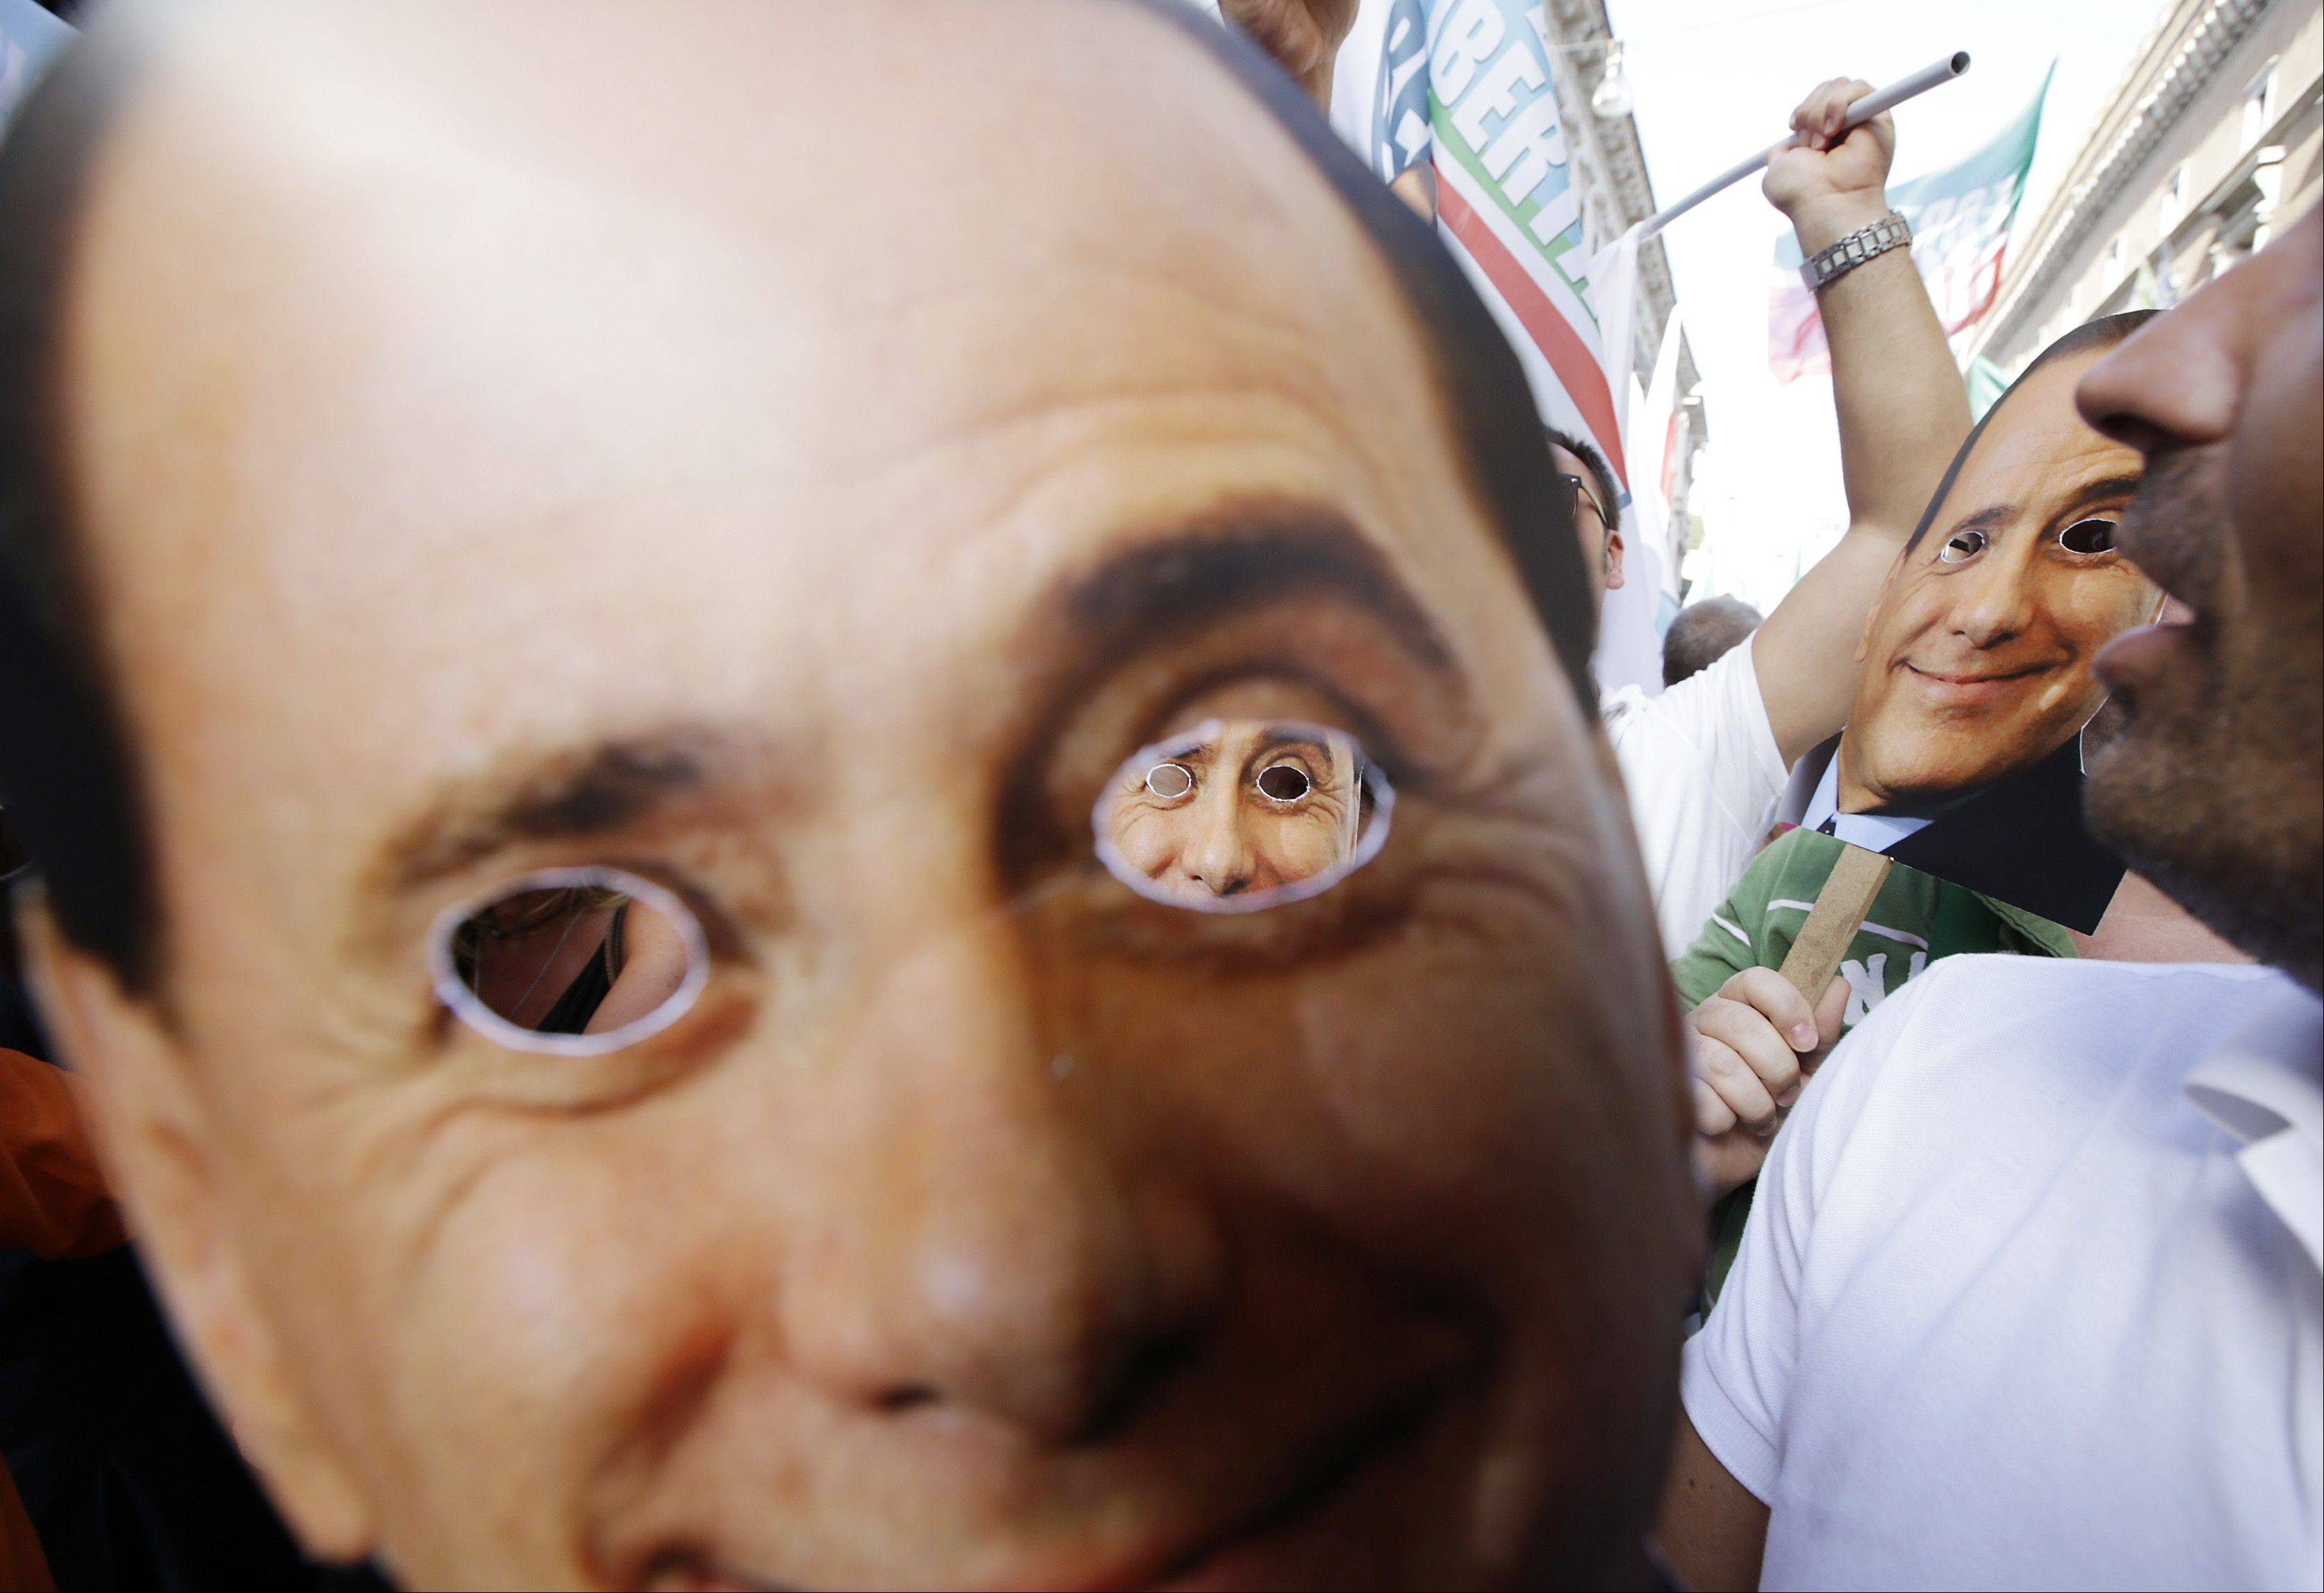 Supporters carry masks portraying Silvio Berlusconi during a demonstration Sunday in Rome.